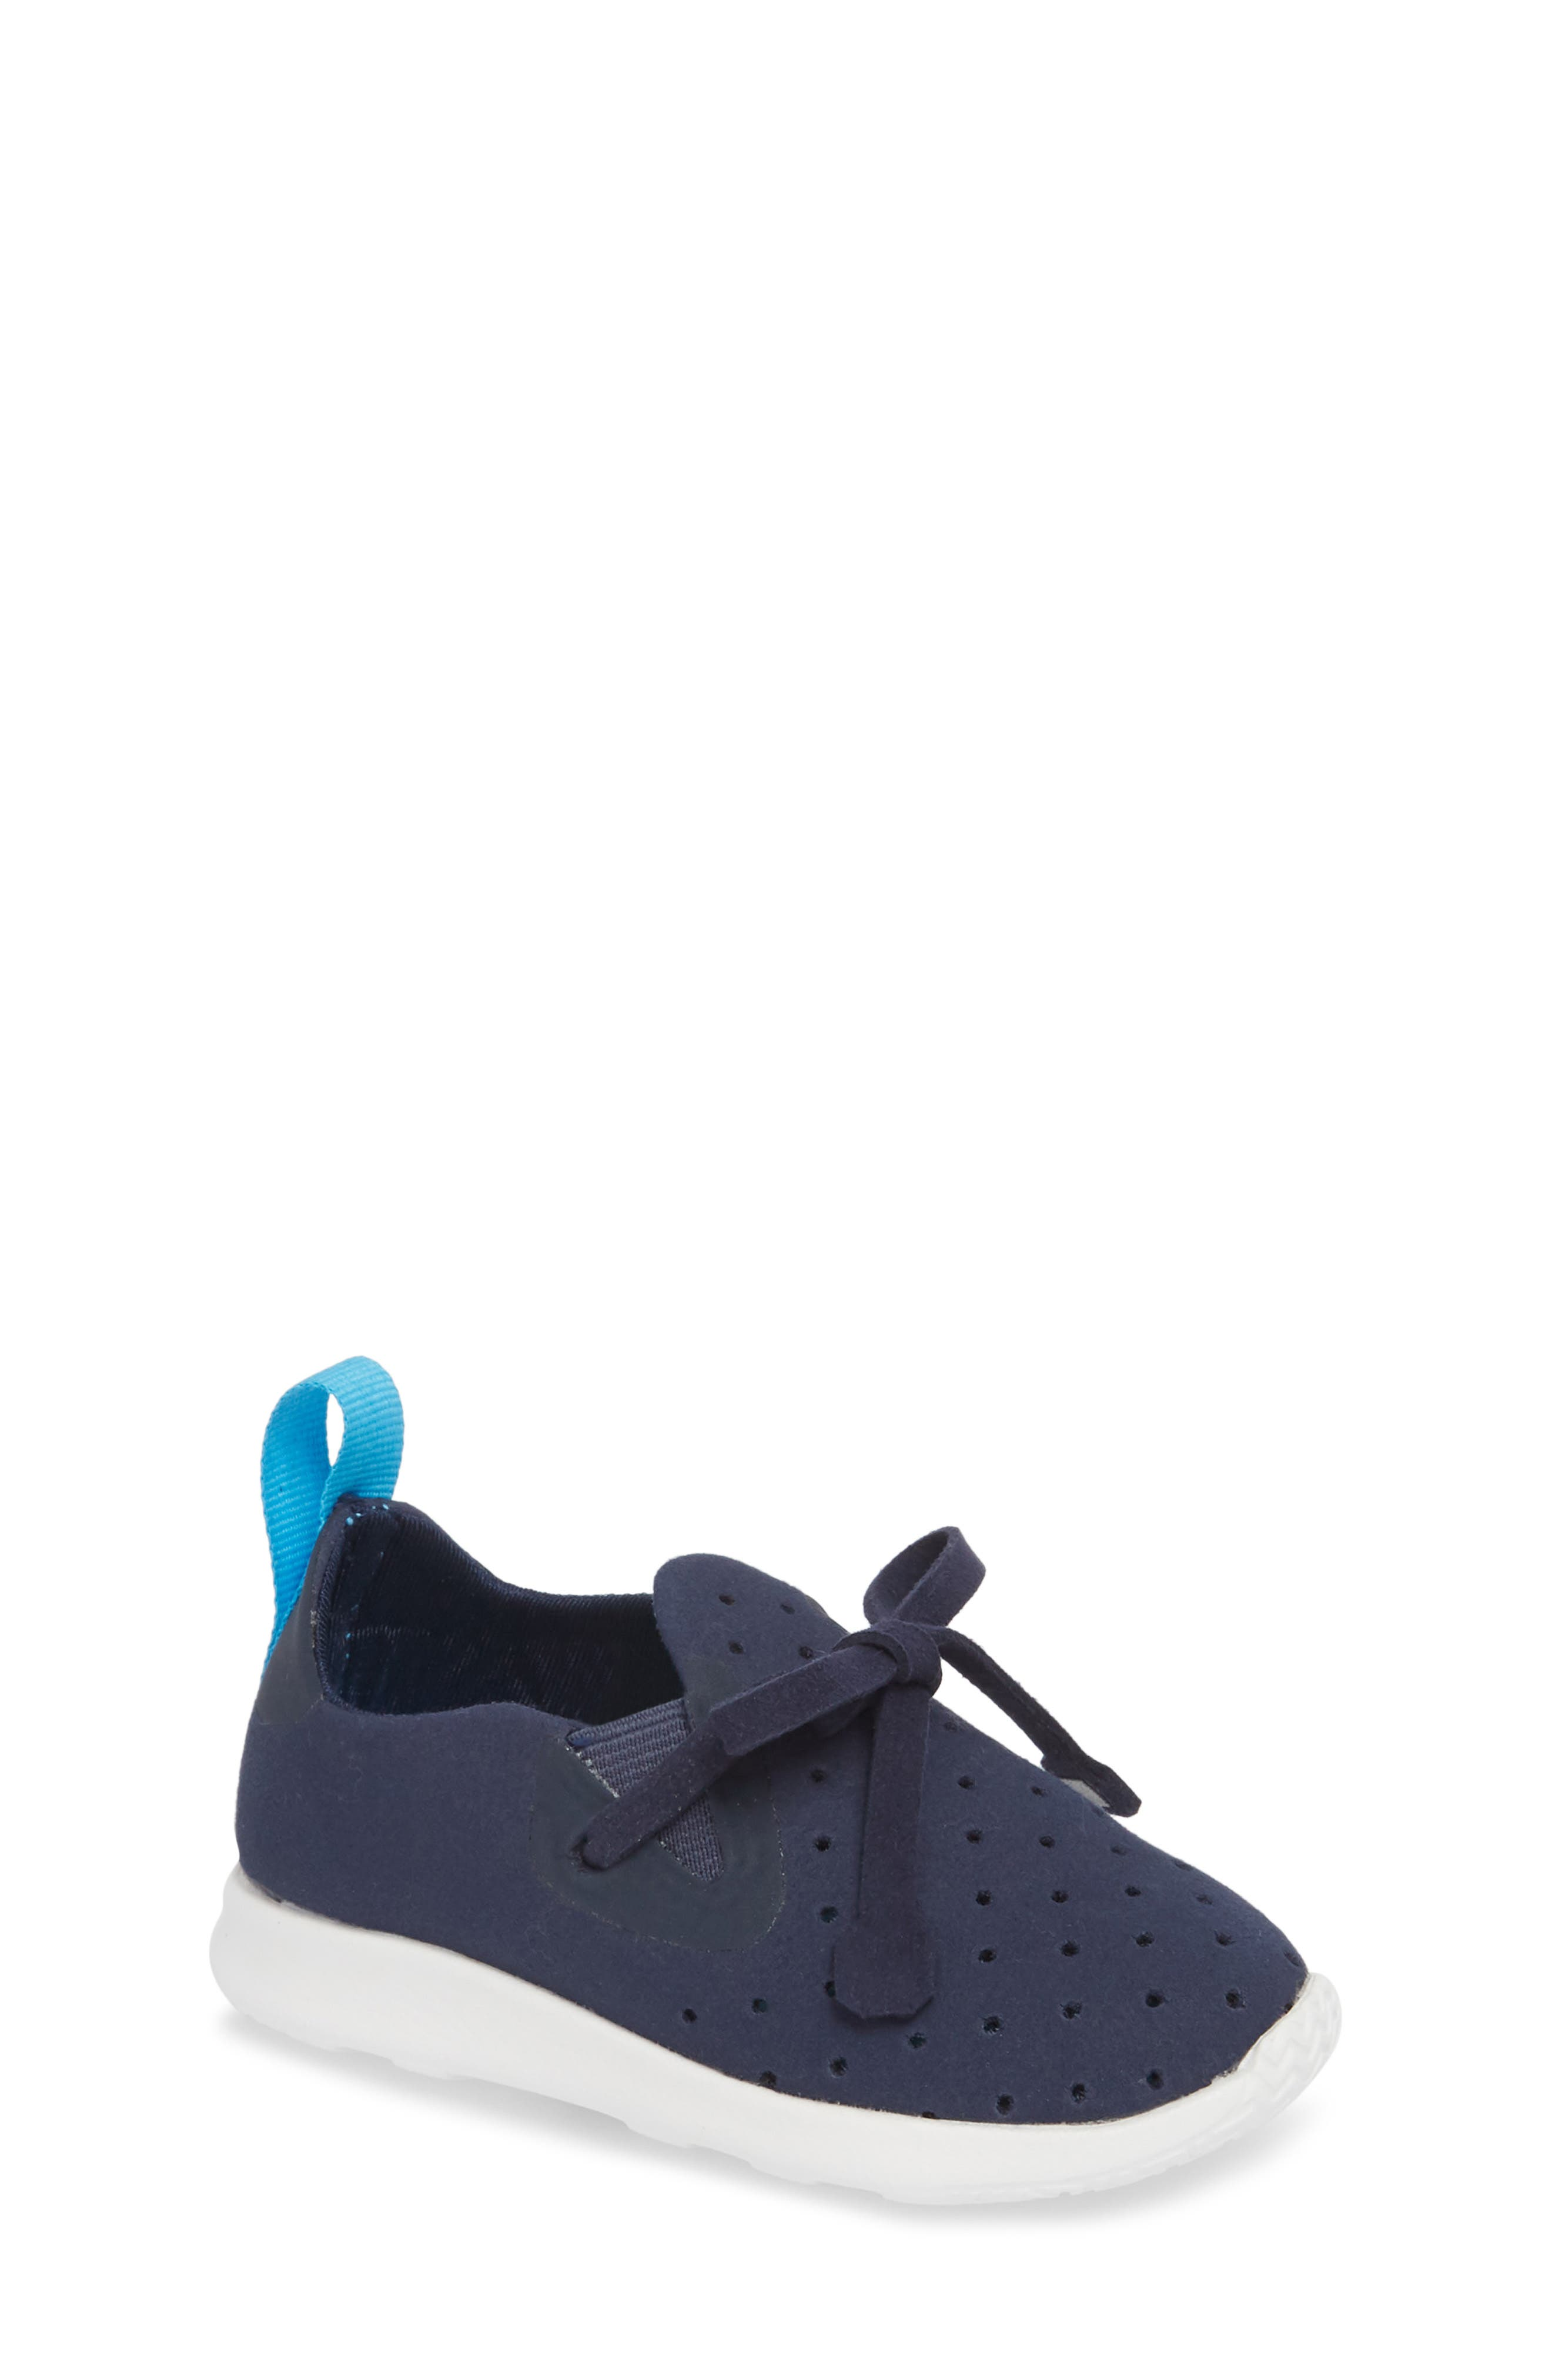 AP Moc Perforated Washable Sneaker,                         Main,                         color, Regatta Blue/ Shell White